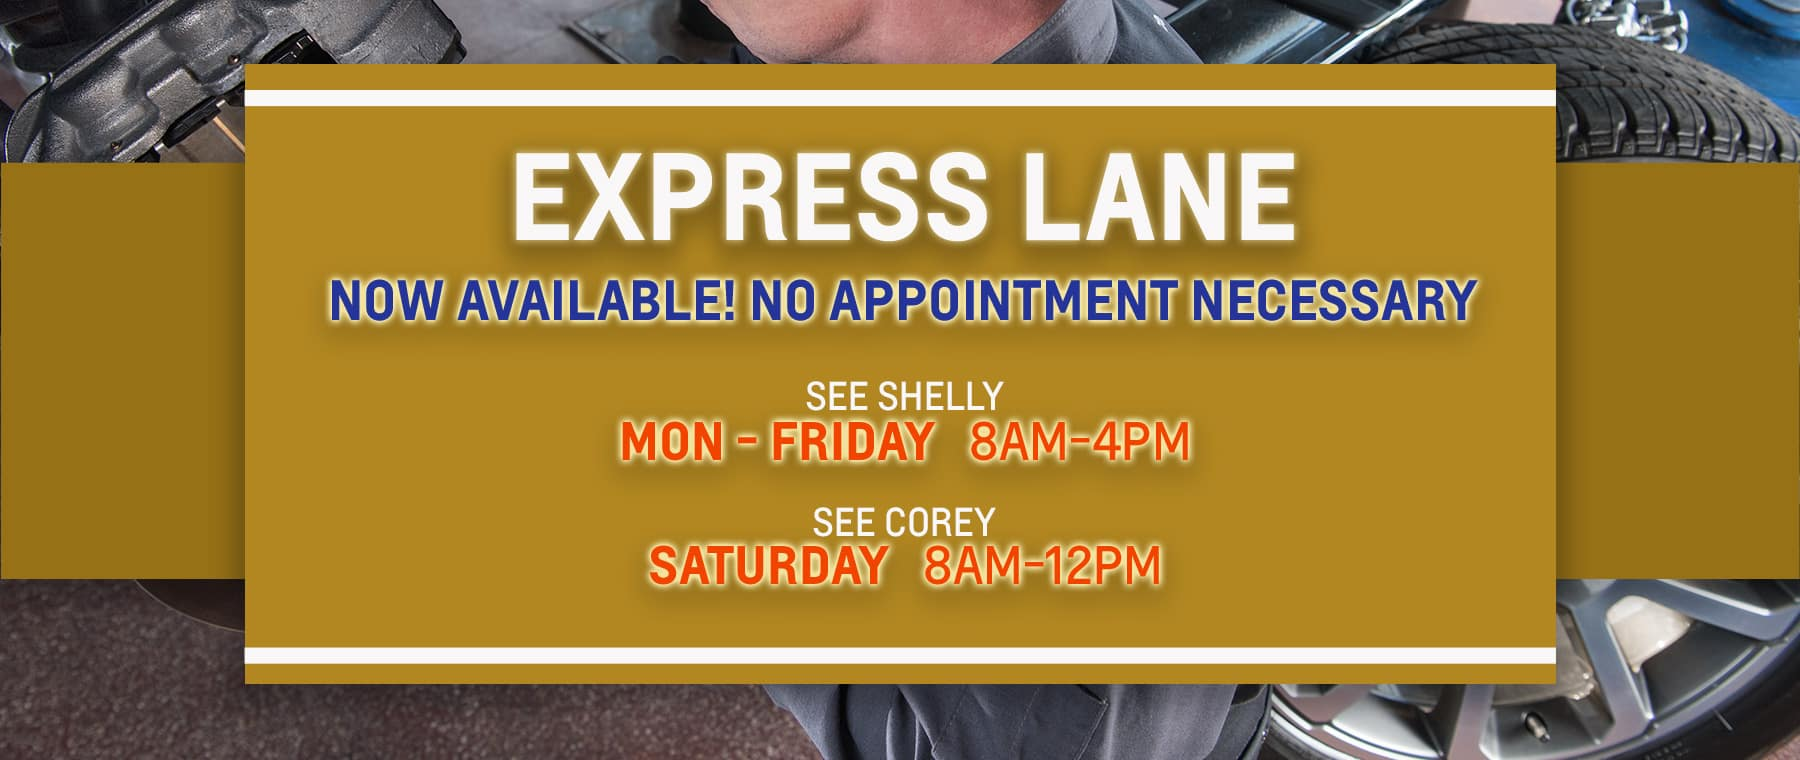 EXPRESS LANE NOW AVAILABLE! NO APPOINTMENT NECESSARY SEE SHELLY MPN-FRI 8-4 SEE COREY SATURDAY 8-12